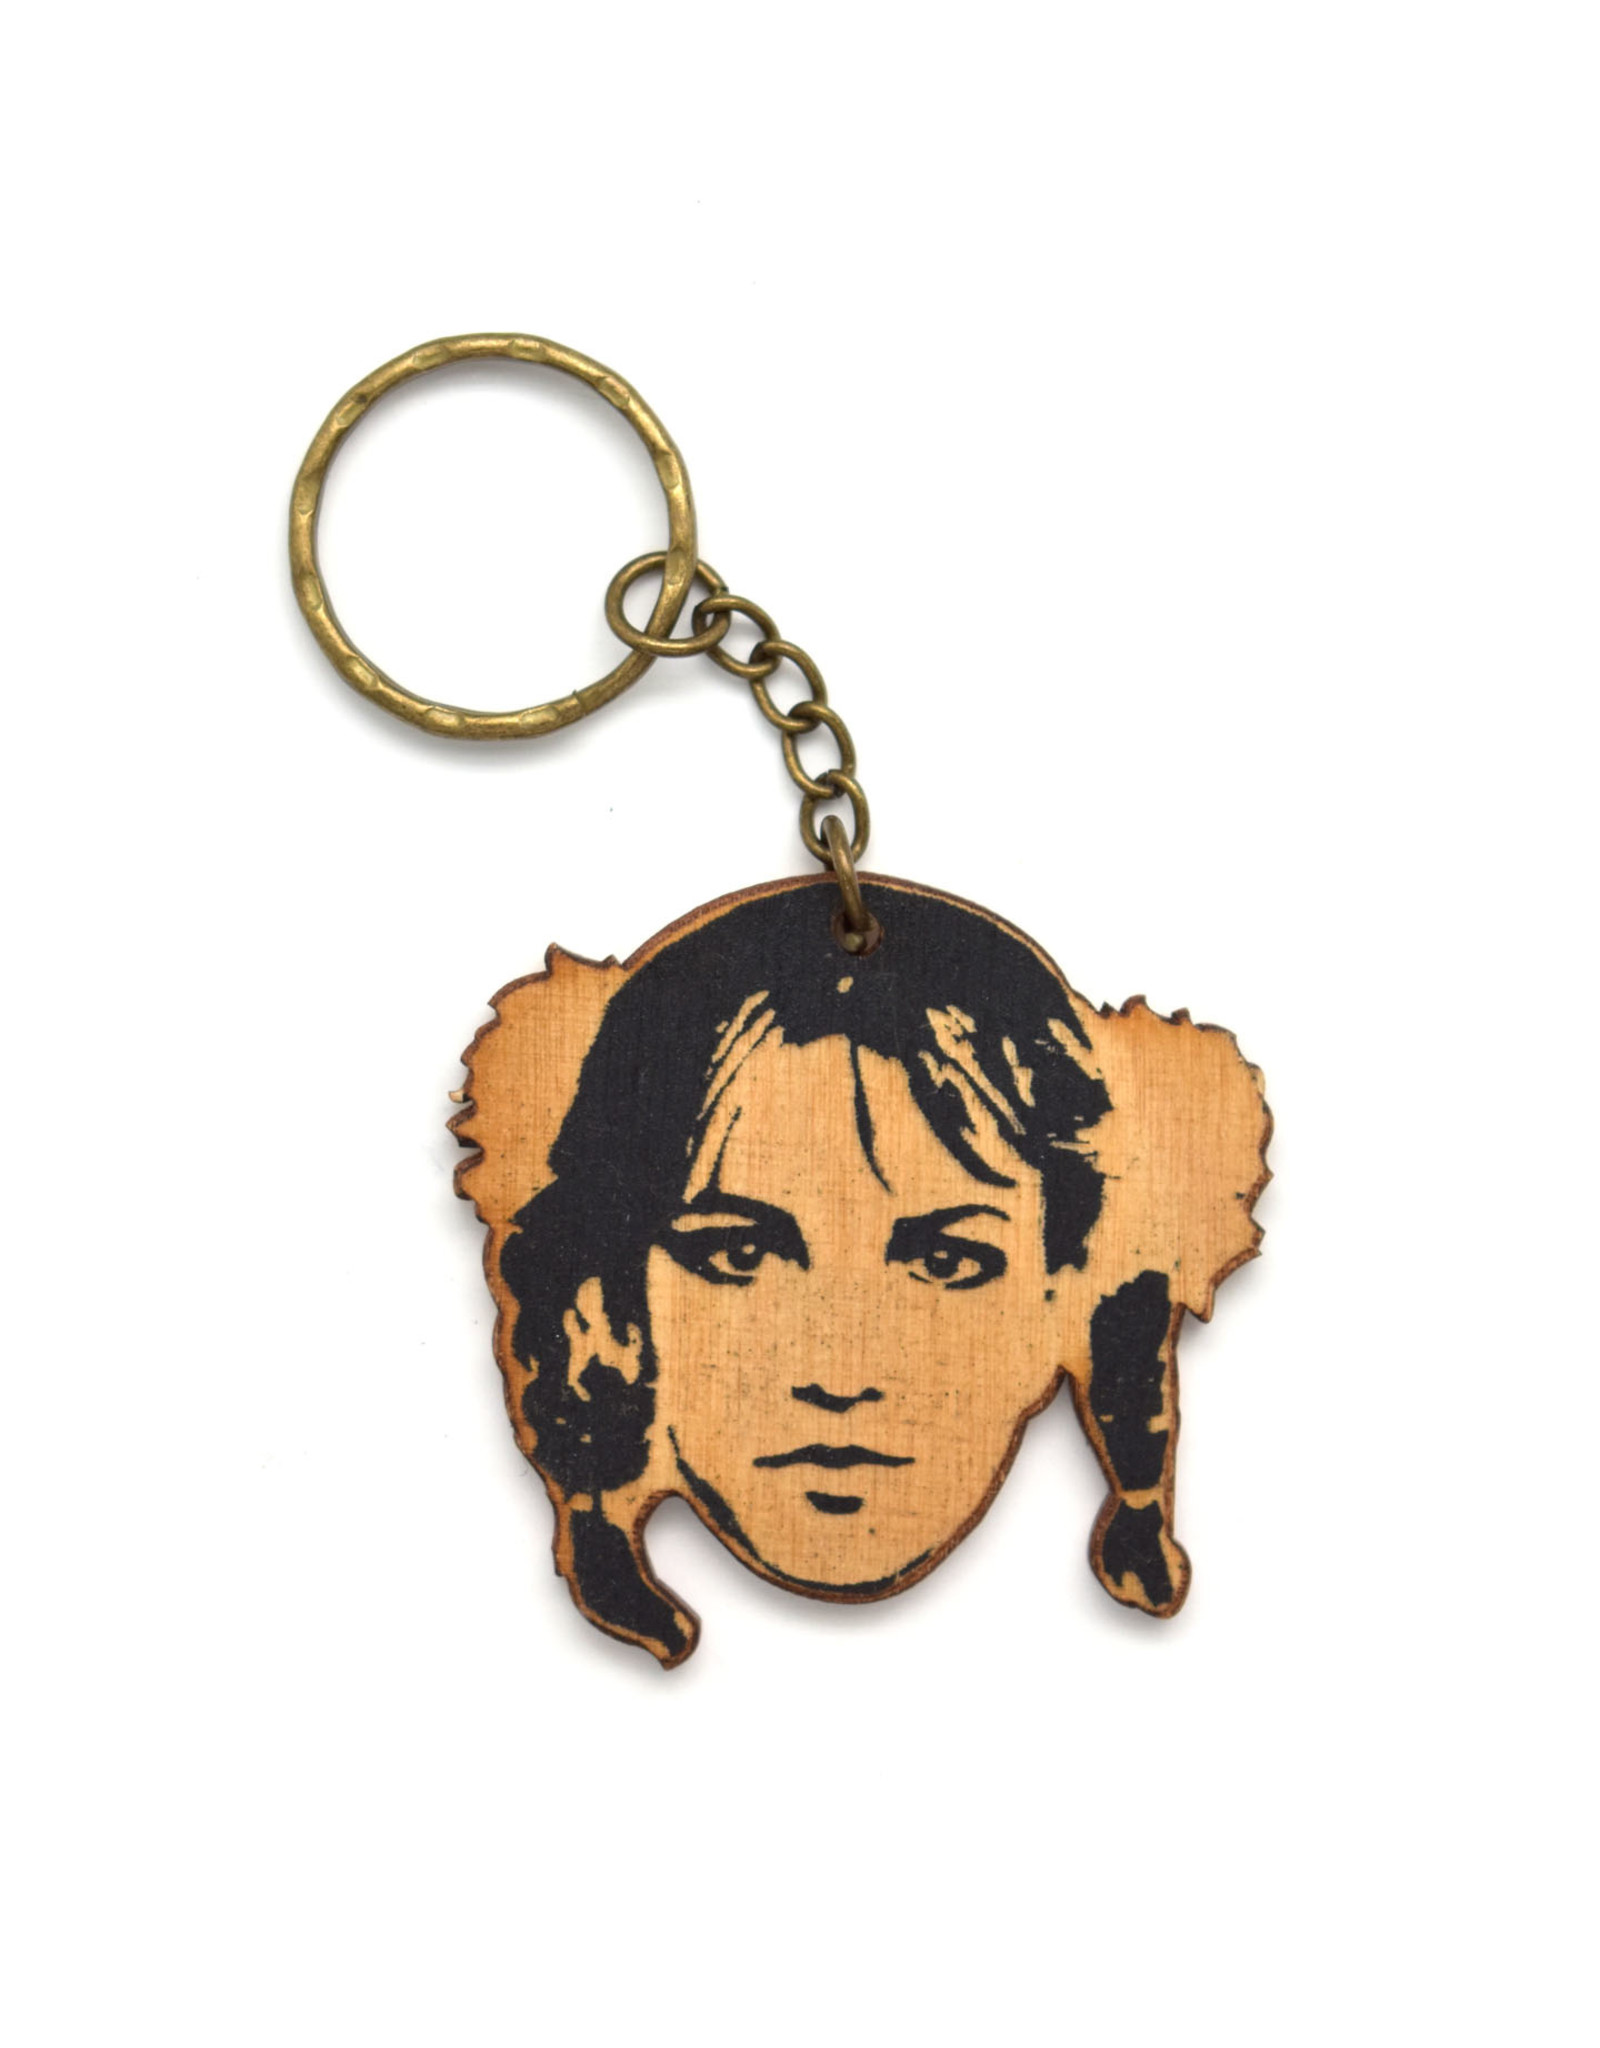 Britney Spears Wooden Keychain